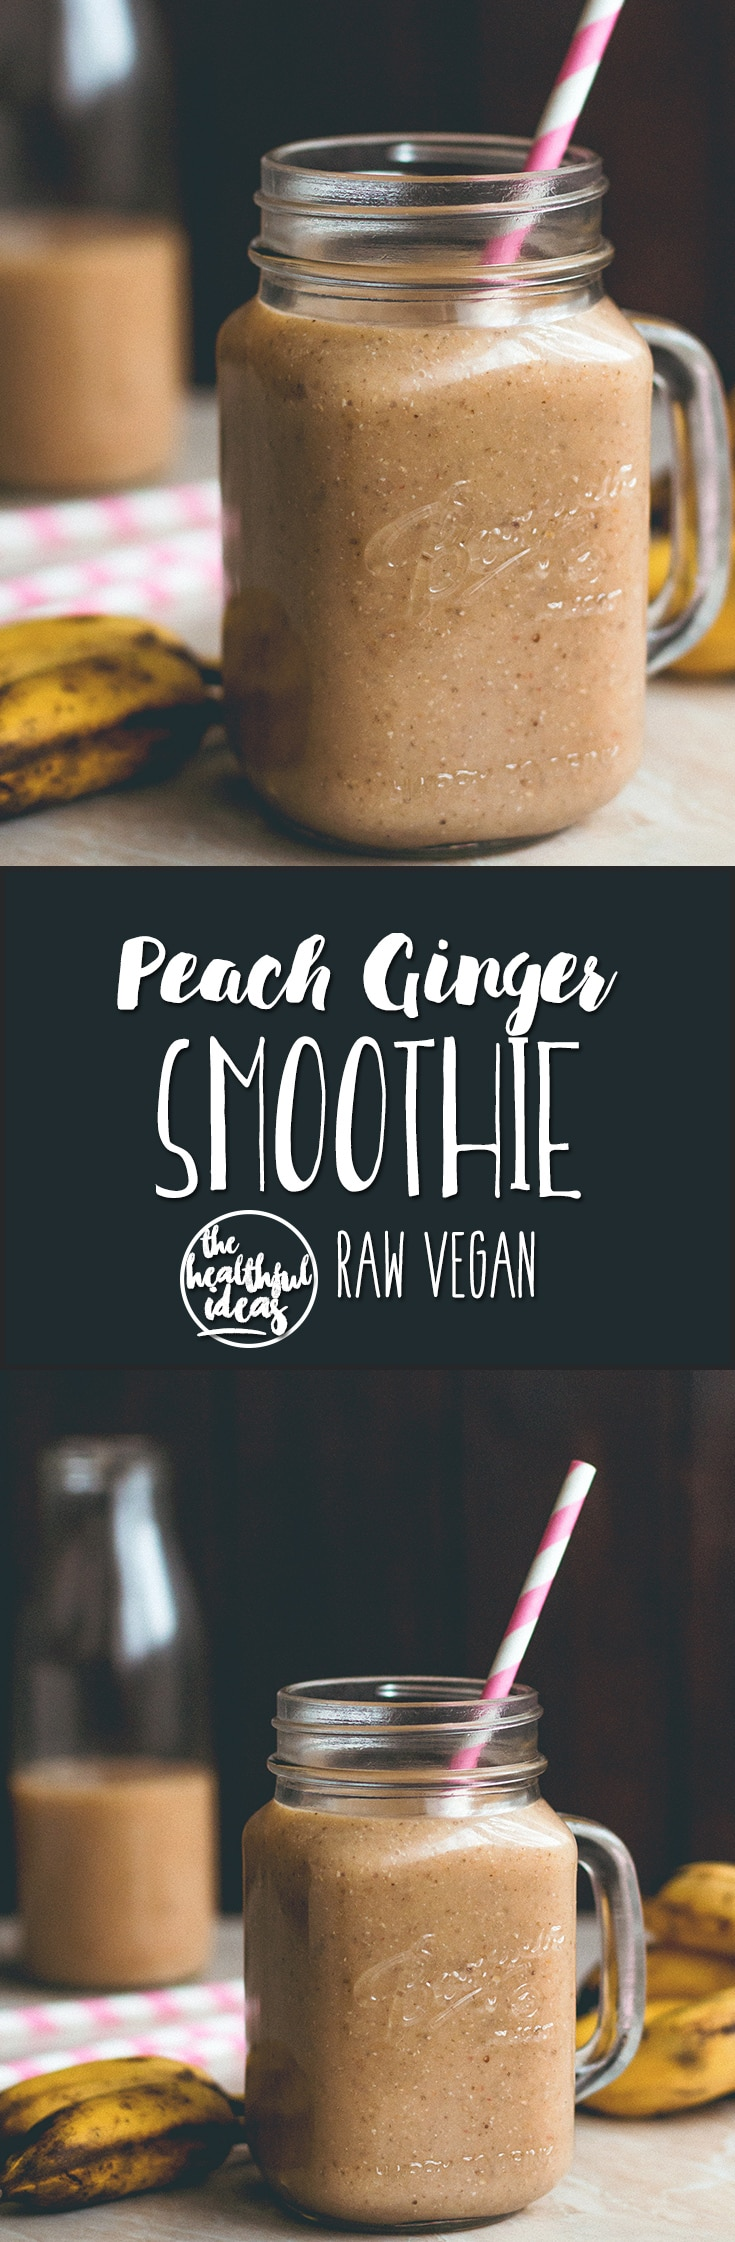 Peach Ginger Smoothie - super refreshing, naturally sweet, and really nutritious! It's raw, vegan, and only takes a couple minutes to make! | thehealthfulideas.com